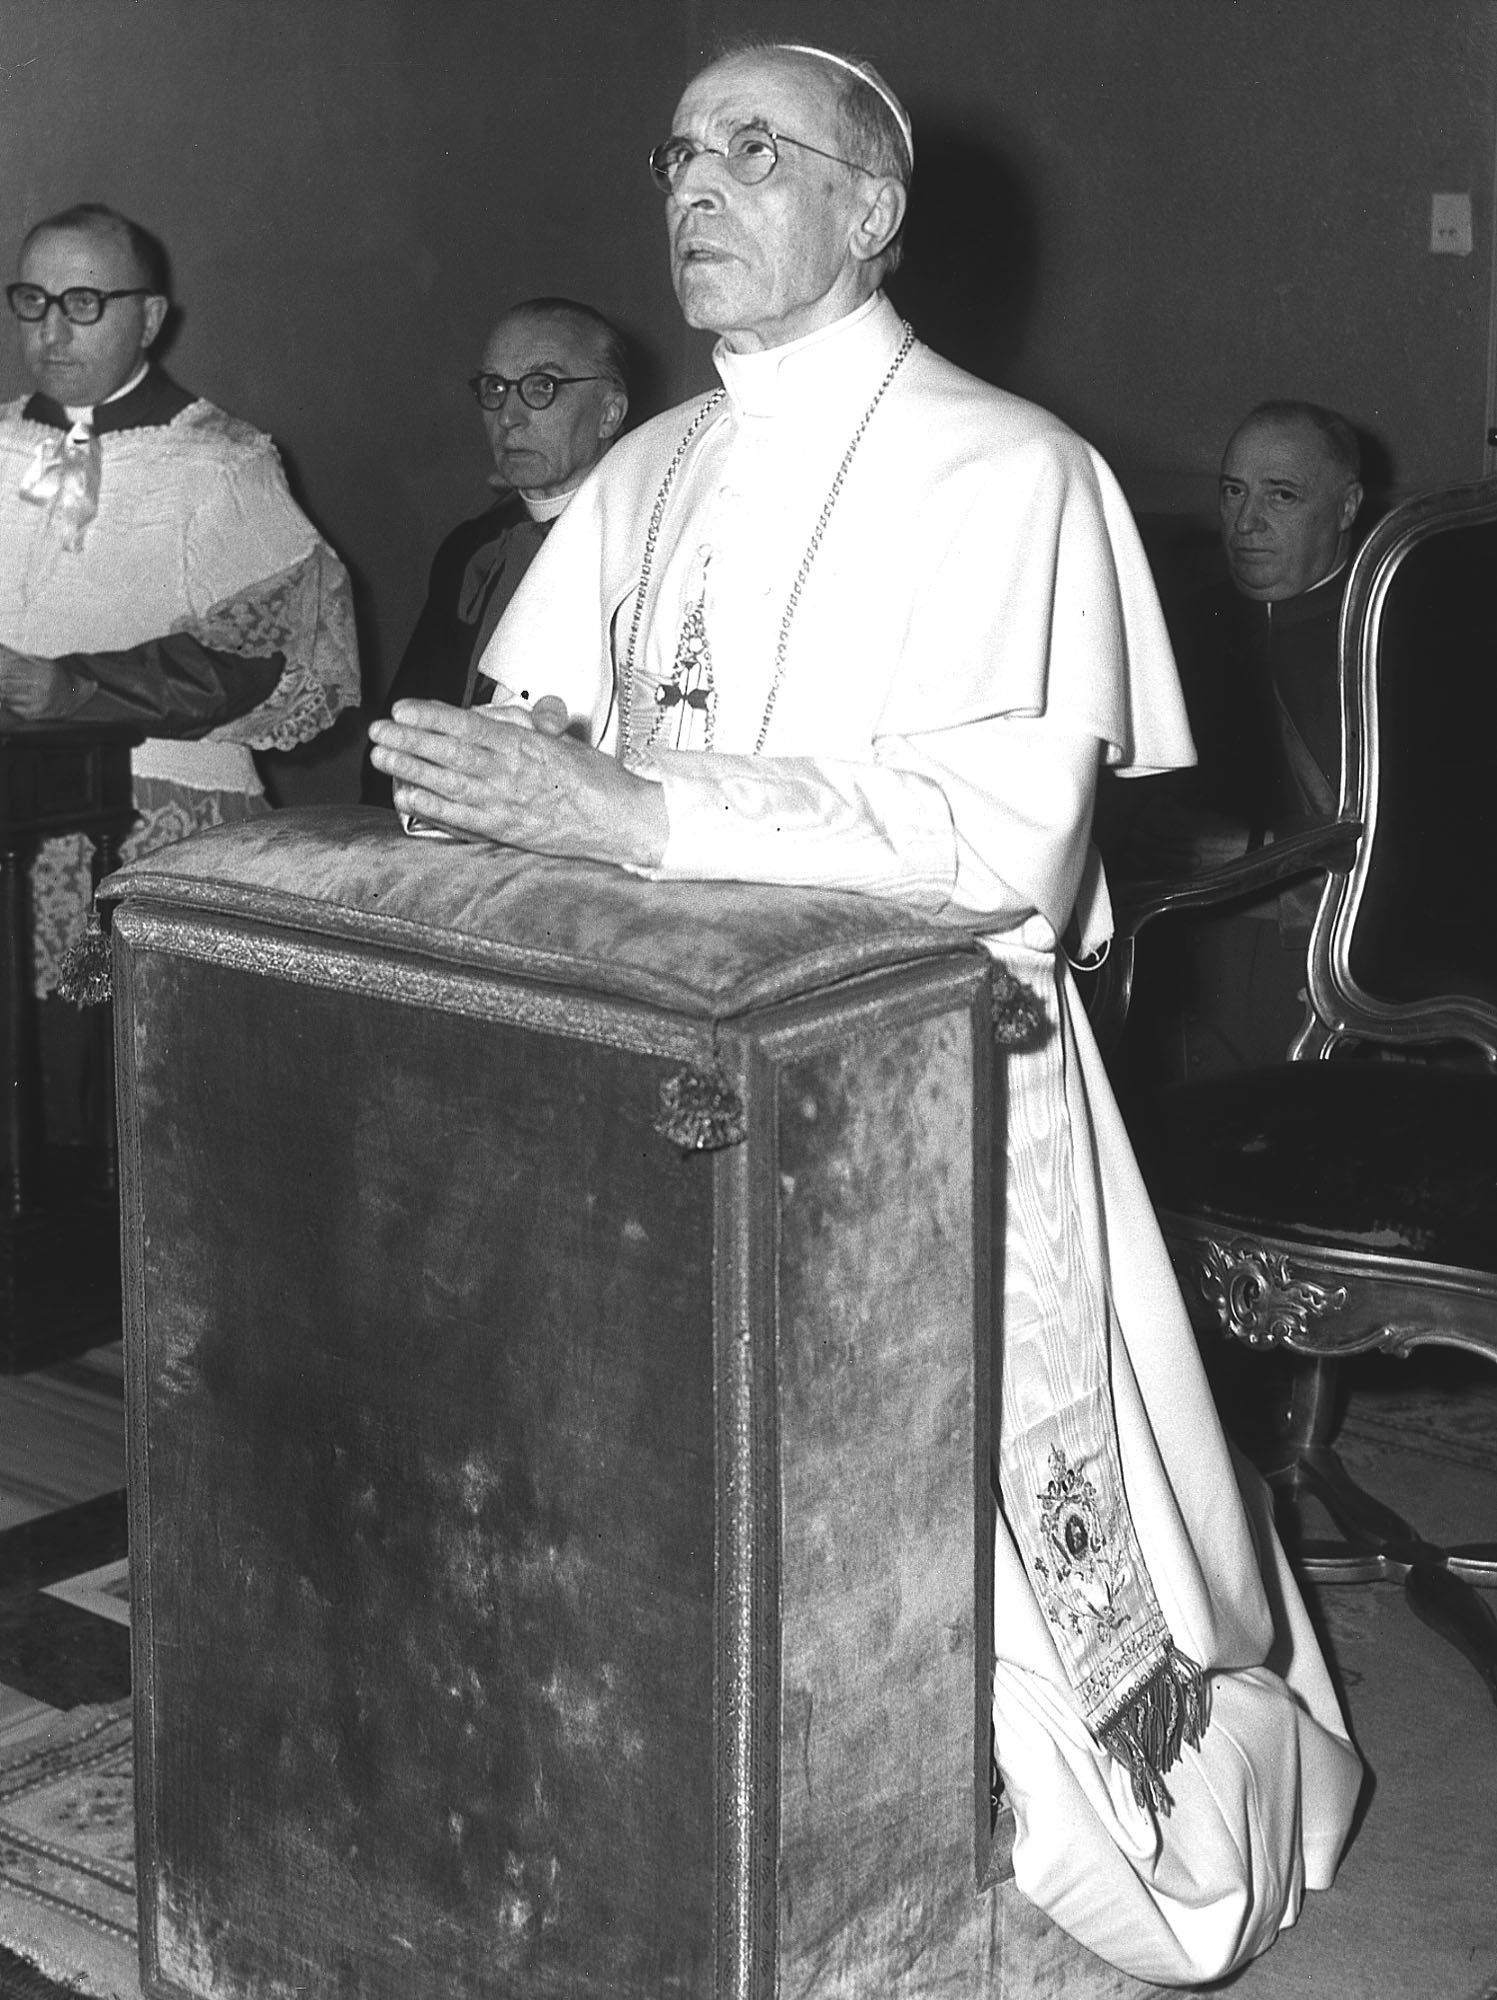 Pope Pius XII praying in his private chapel of the Papal summer residence at Castelgandolfo, about 17 miles south of Rome, Okt. 05, 1958. Sitting in background are (l/r:) Msgr. Mario Aluffi, chaplain of the Papl villa; and Msgr. Mario Nasalli Rocca, secret waiter to the Pontiff. The Pope was still today under treatment for gastritis and hiccups, the ailment that dangerously weakened him four years ago. The present affliction was described as a slight attack and does not cause undue concern, but precautions are taken both because of the Pontiff's advanced age and because of a fatigue, resulting from two months of intensive work. (AP-Photo/jo/Luigi Felici)